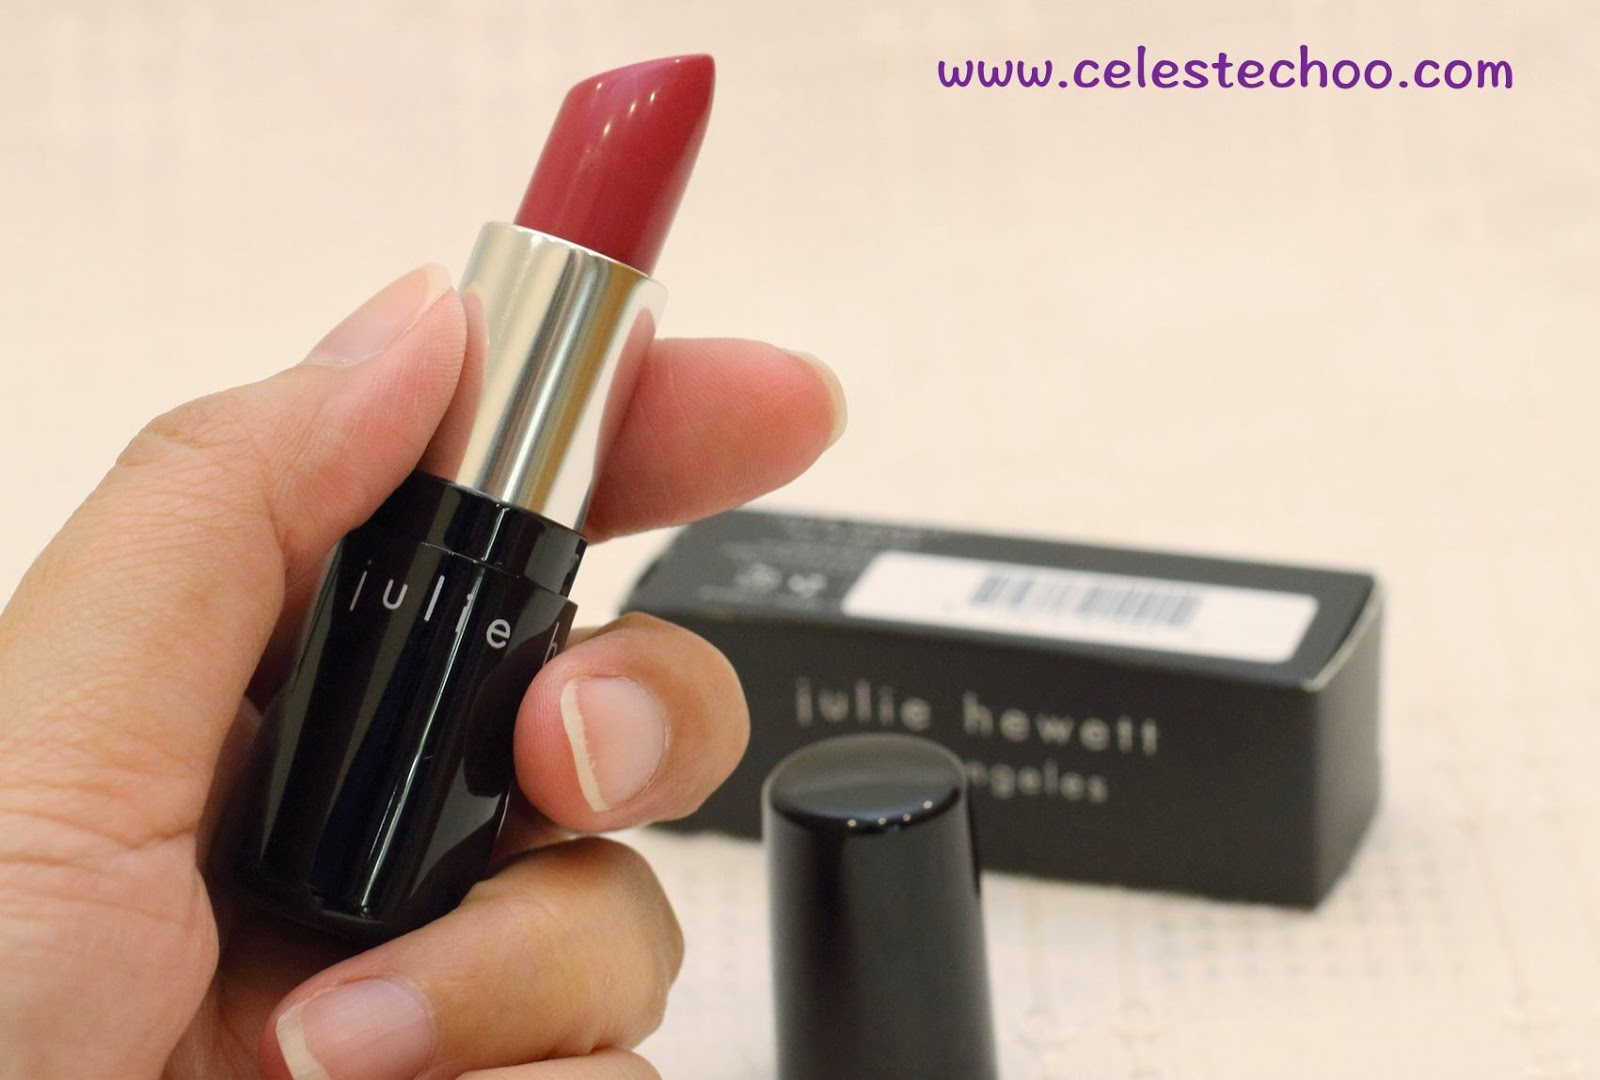 julie-hewett-bijou-collection-lipstick-lulu